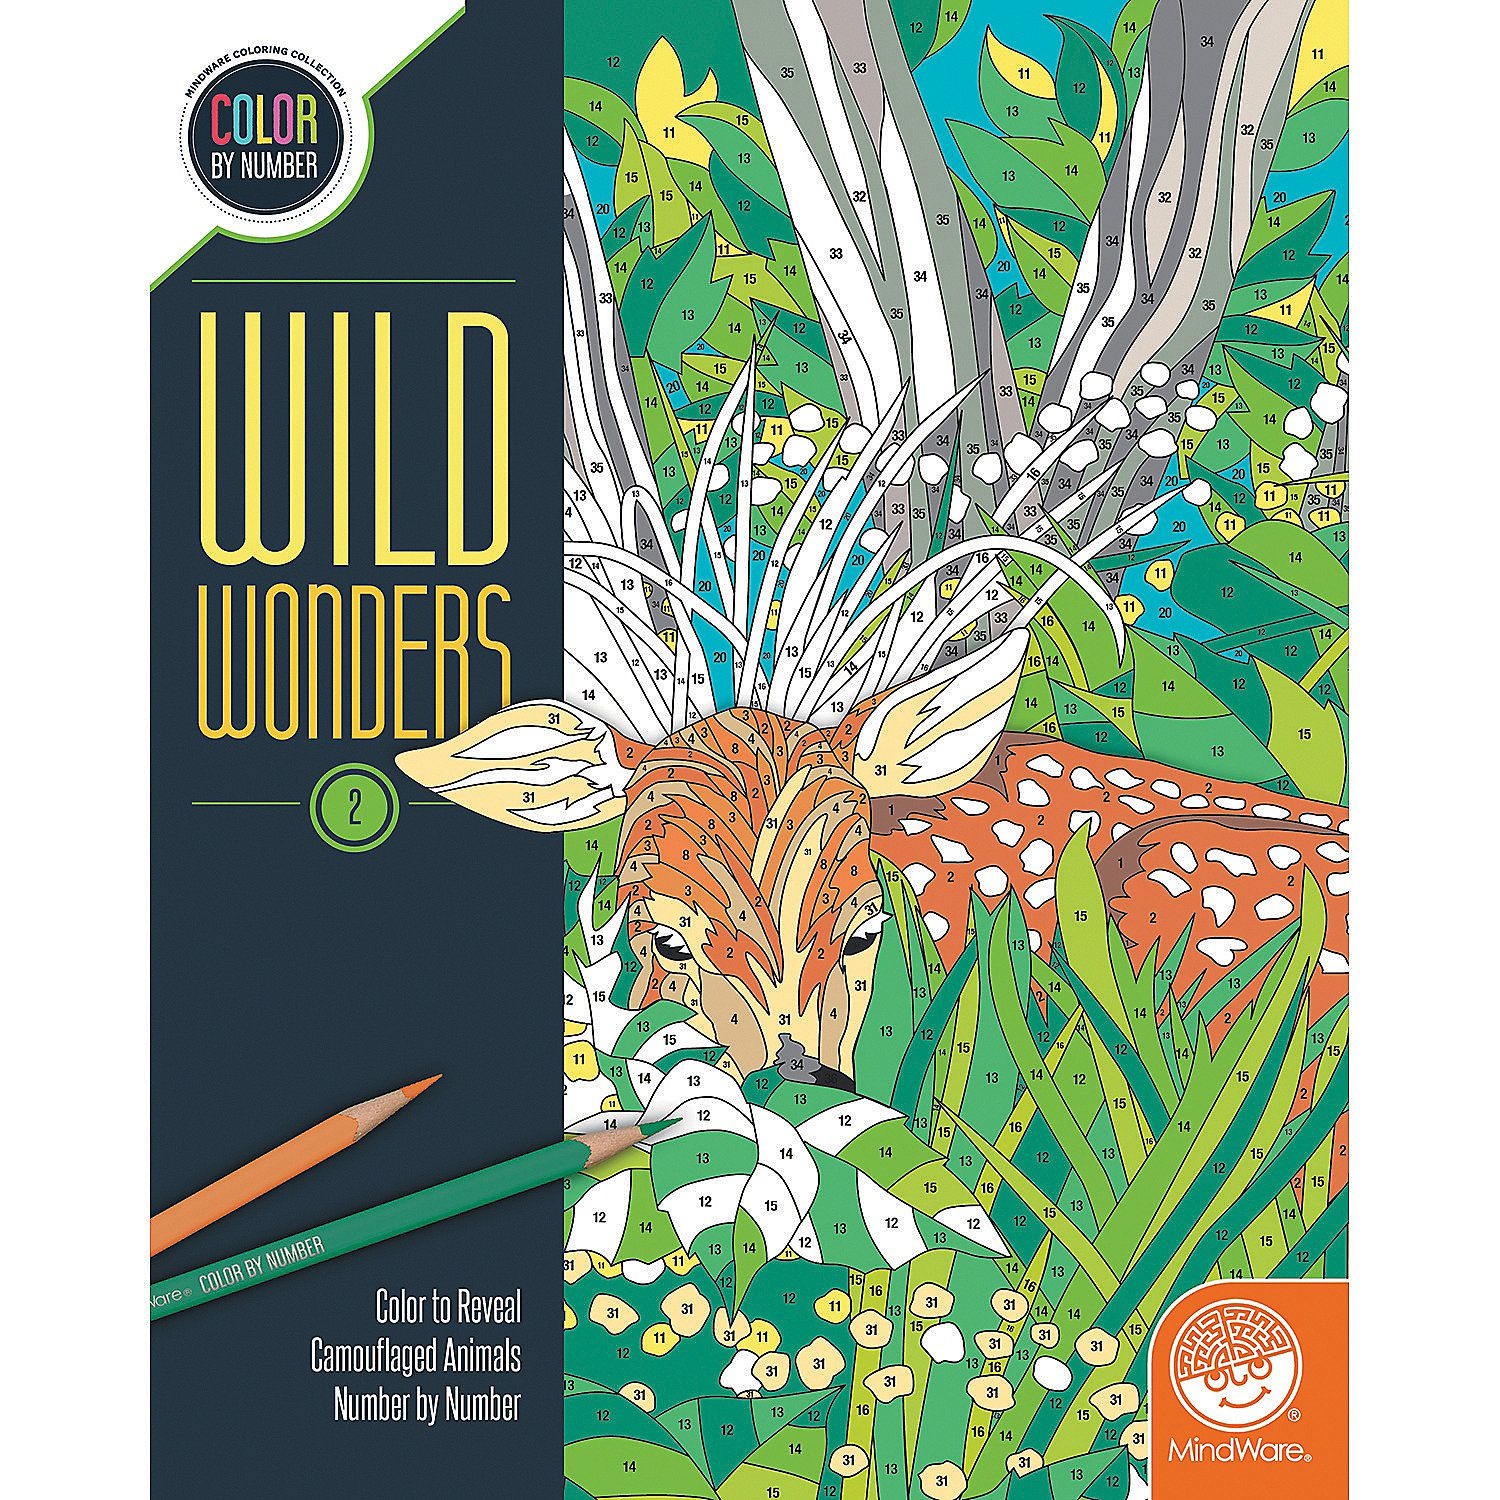 Wild+Wonders+Color+by+Number:+Book+2+-+Mindware.com | Cool kids ...